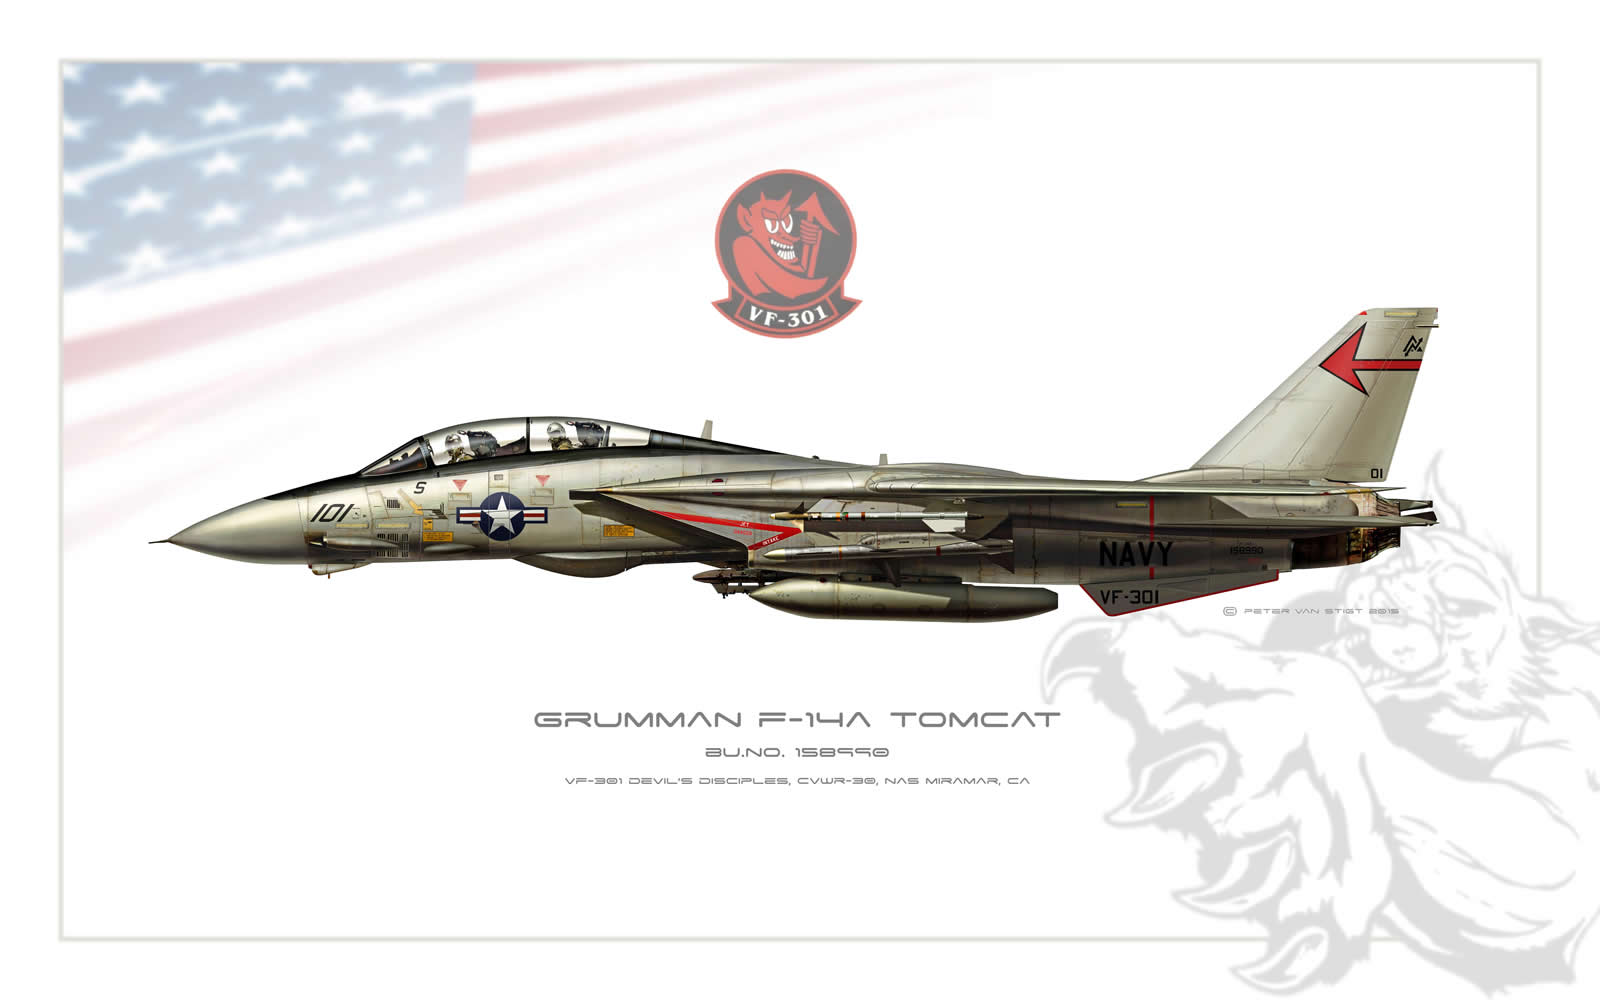 VF-301 Devil's Disciples F-14 Tomcat Profile